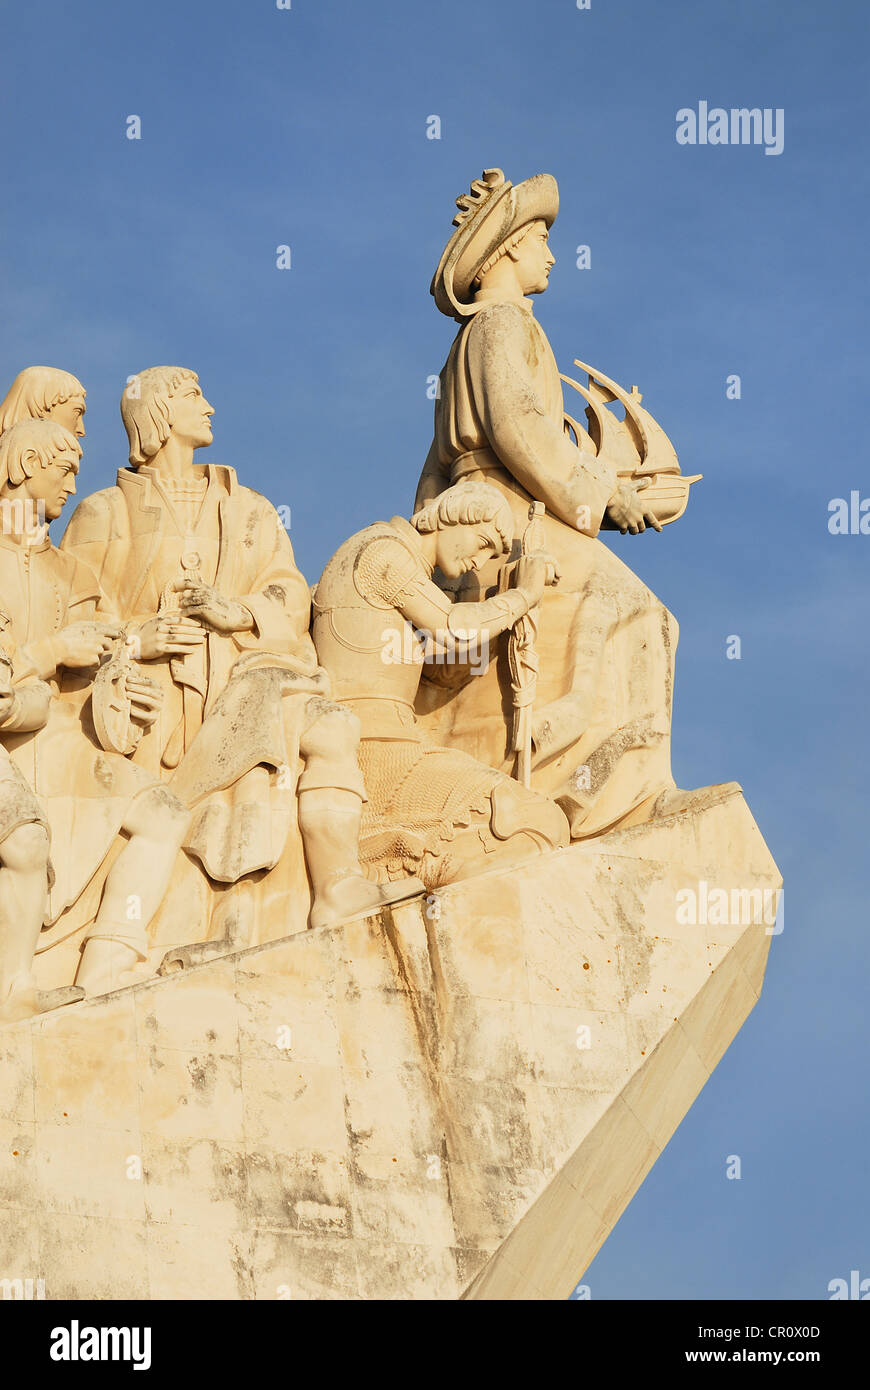 The Padrao dos Descobrimentos (Monument to the Discoveries) - Stock Image